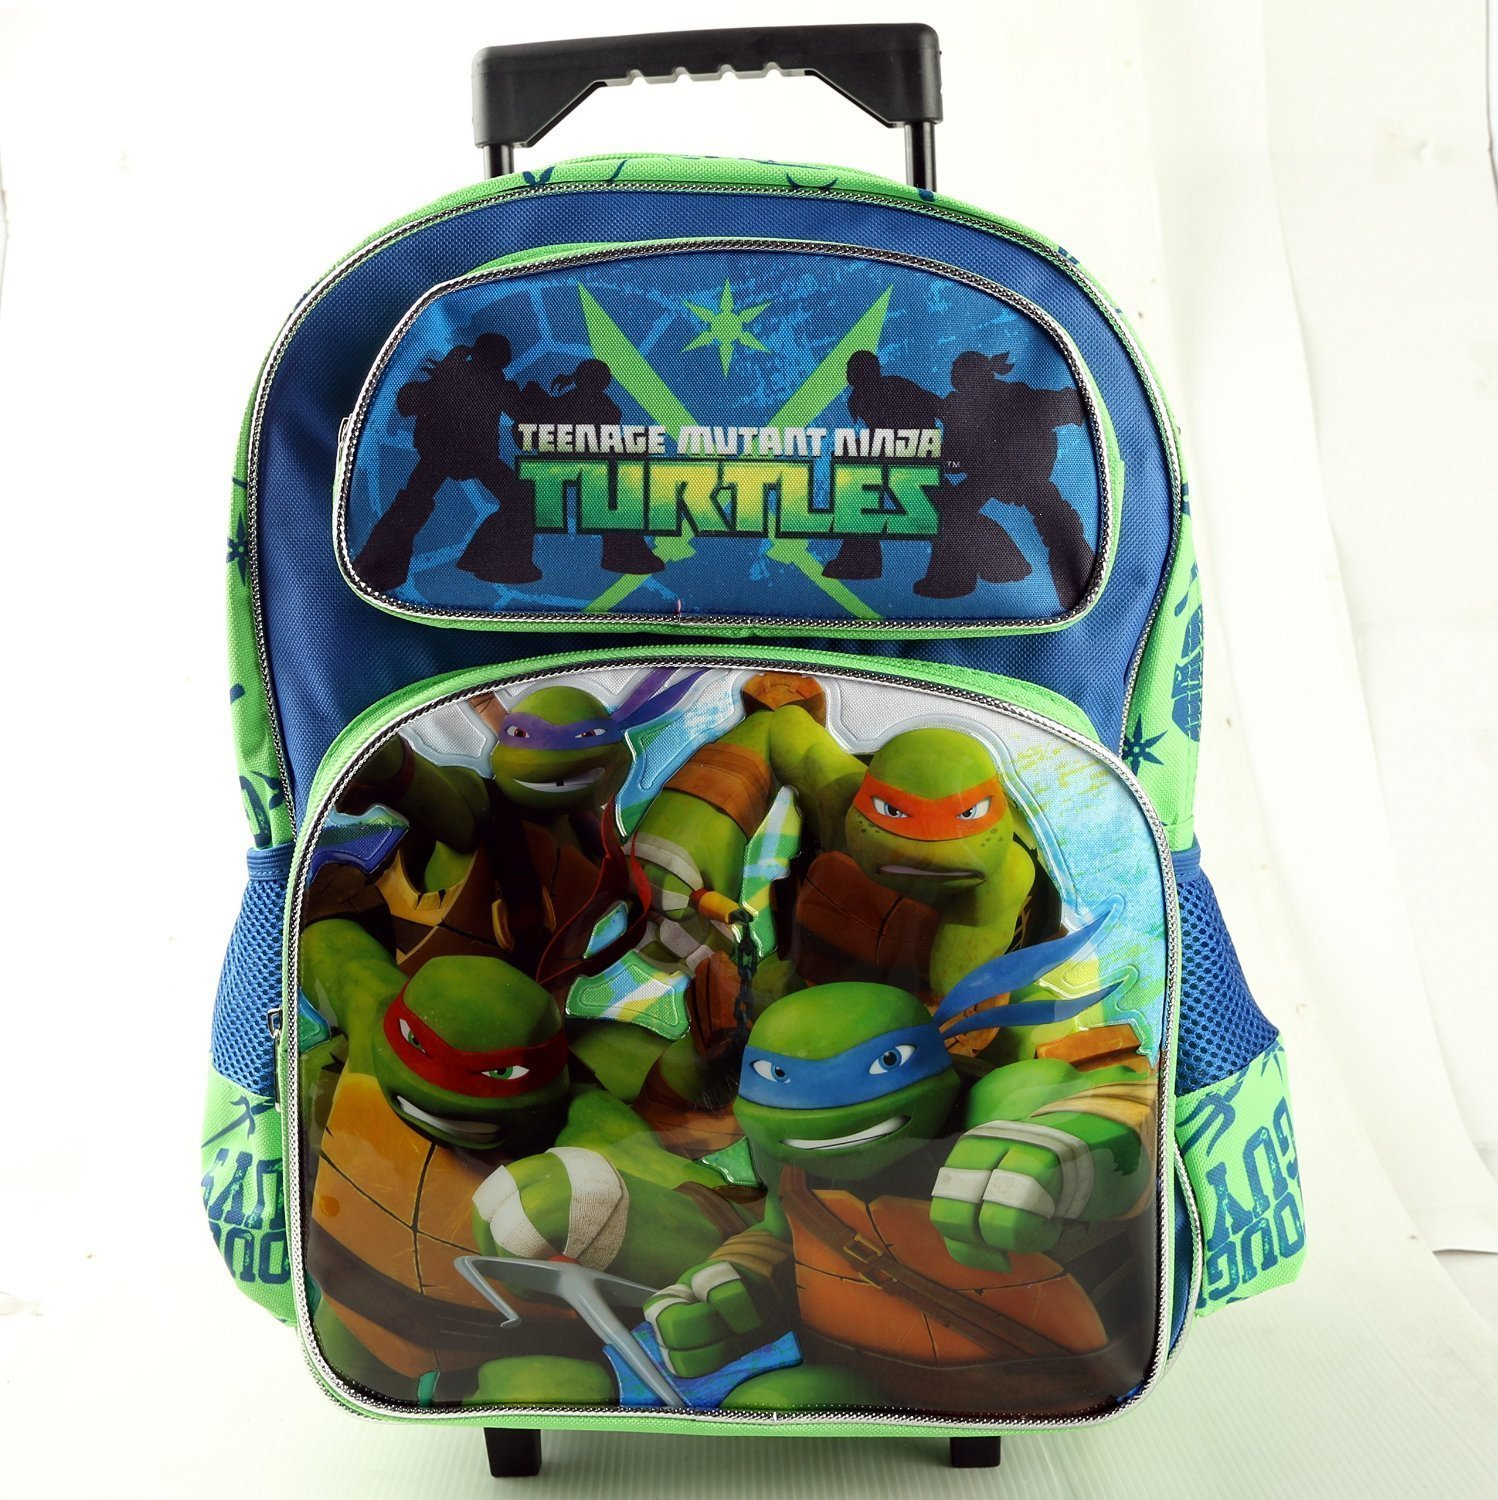 amazoncom nickelodeon teenage mutant ninja turtles 16 large rolling backpack sports outdoors - Cartable Tortue Ninja